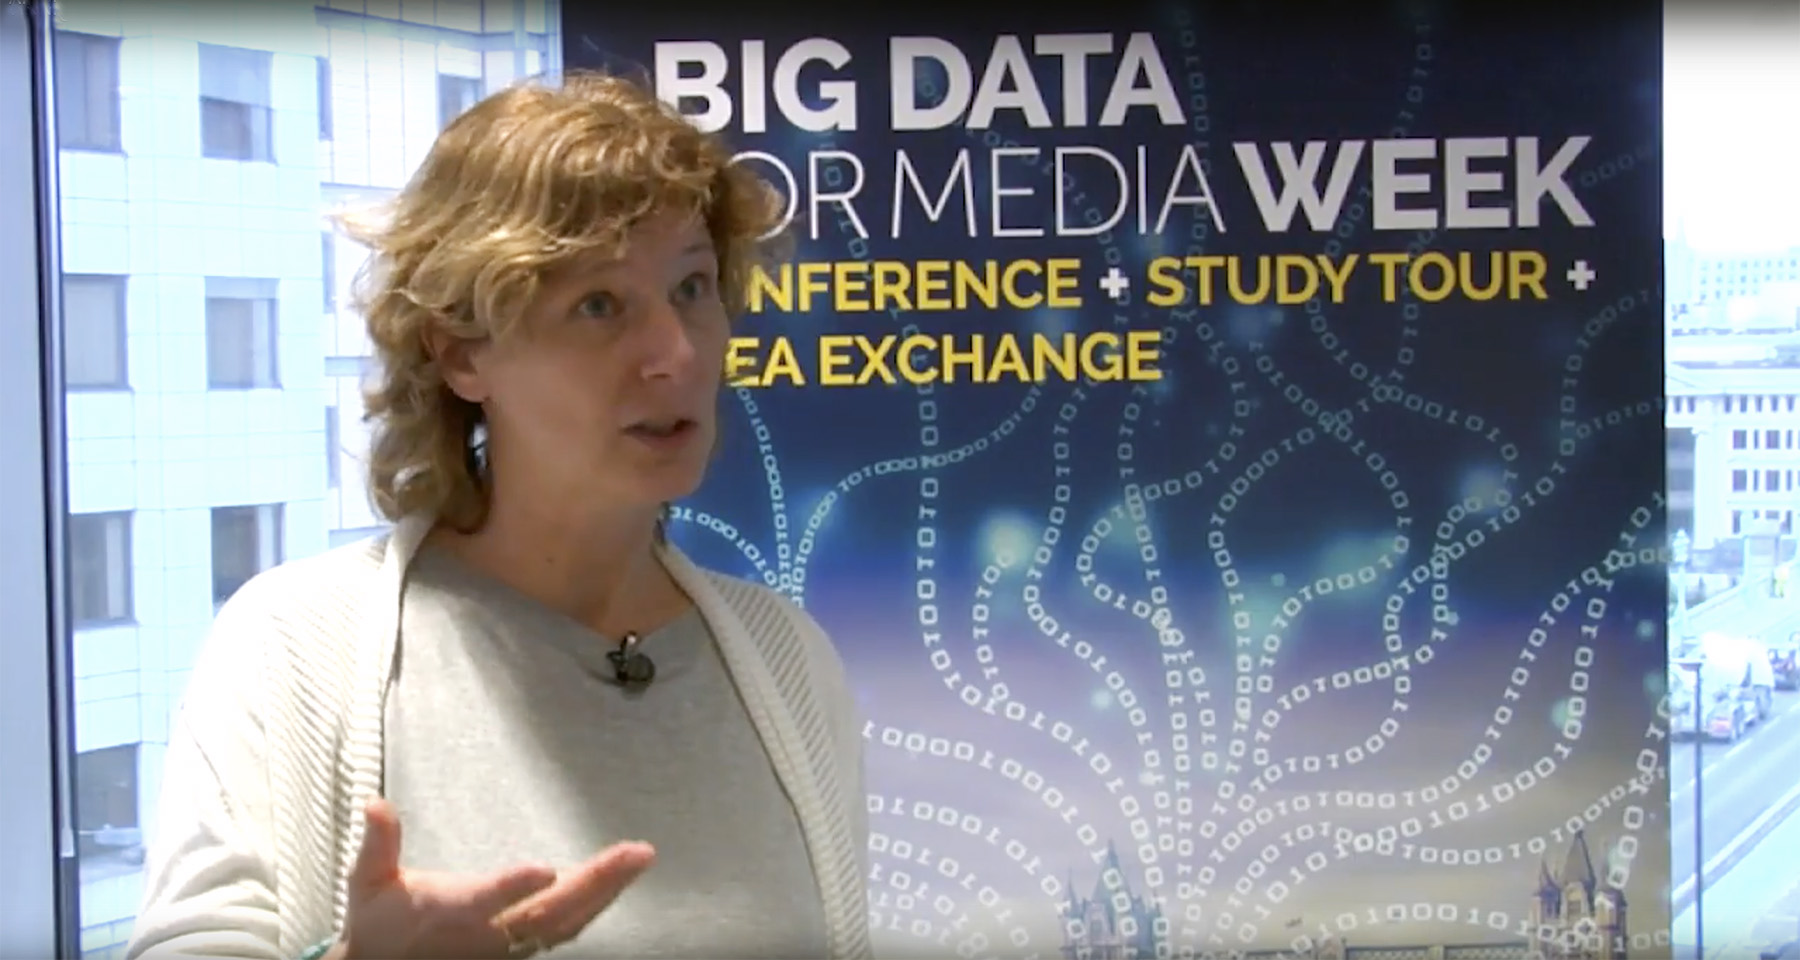 Mediahuis focuses on 4 Big Data opportunities